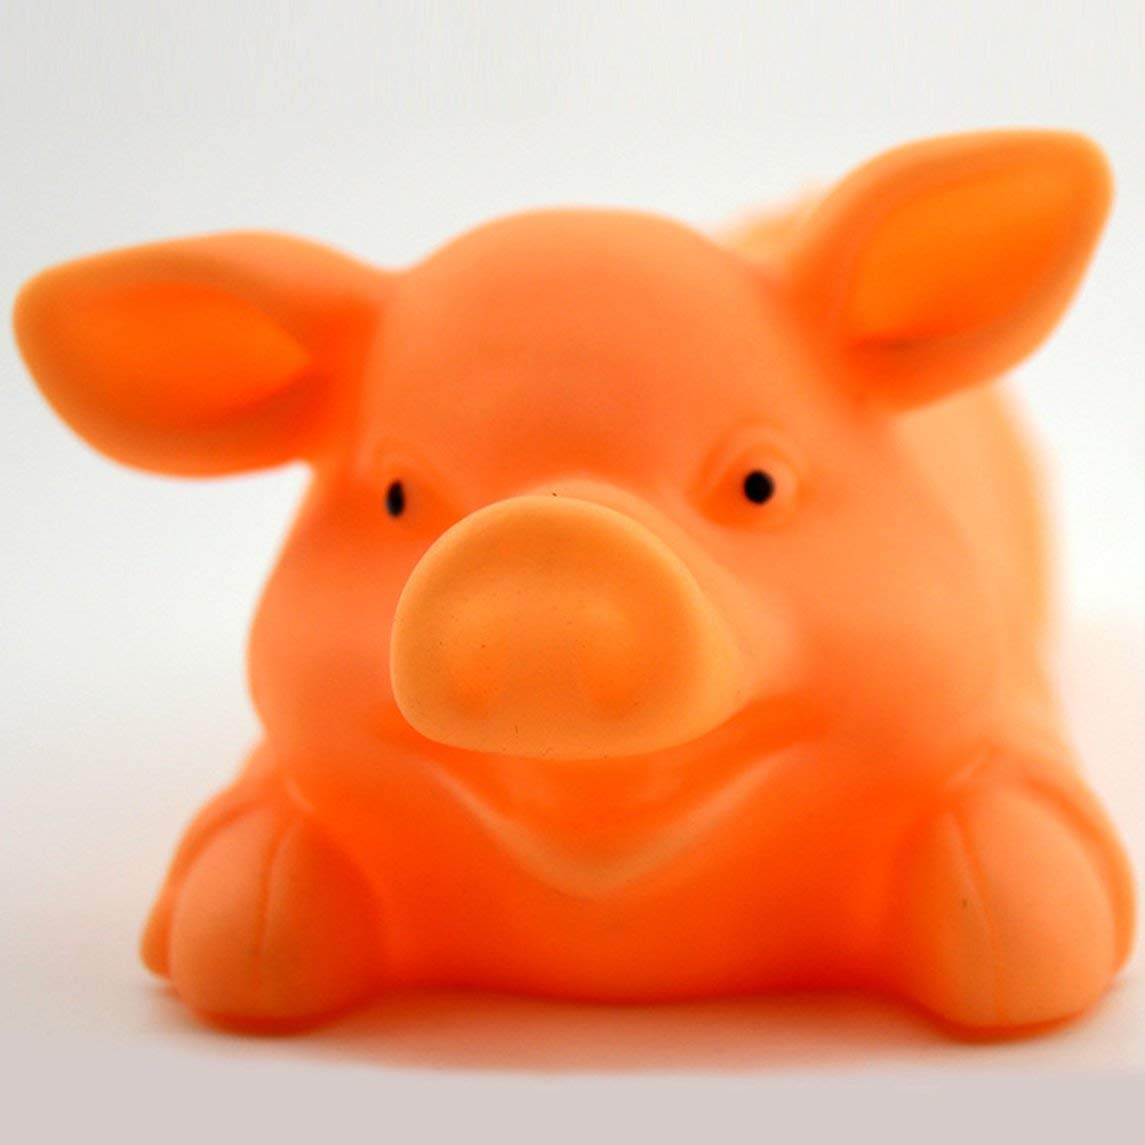 Romirofs Creative Dog Cat Chewing Toy Cute Pig Shaped Rubber Pet Dog Playing Pig Toy with Sound Squeaker Pet Supplies